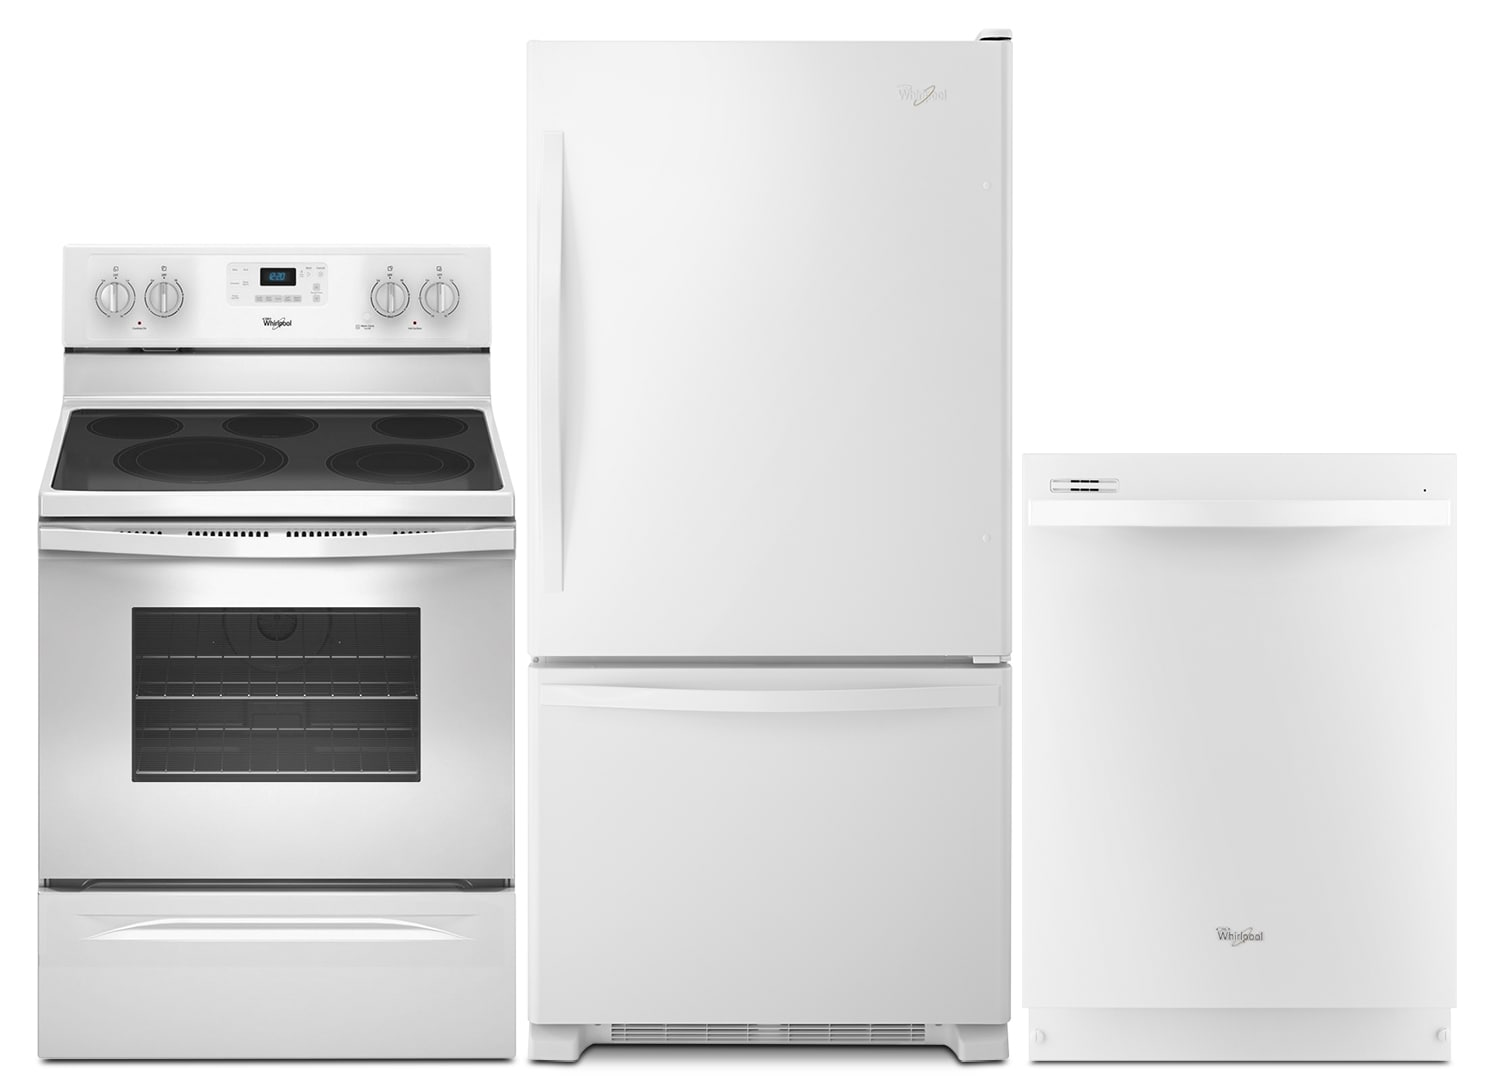 Whirlpool 18.5 Cu. Ft. Refrigerator, Electric Convection Range and Built-In Dishwasher - White